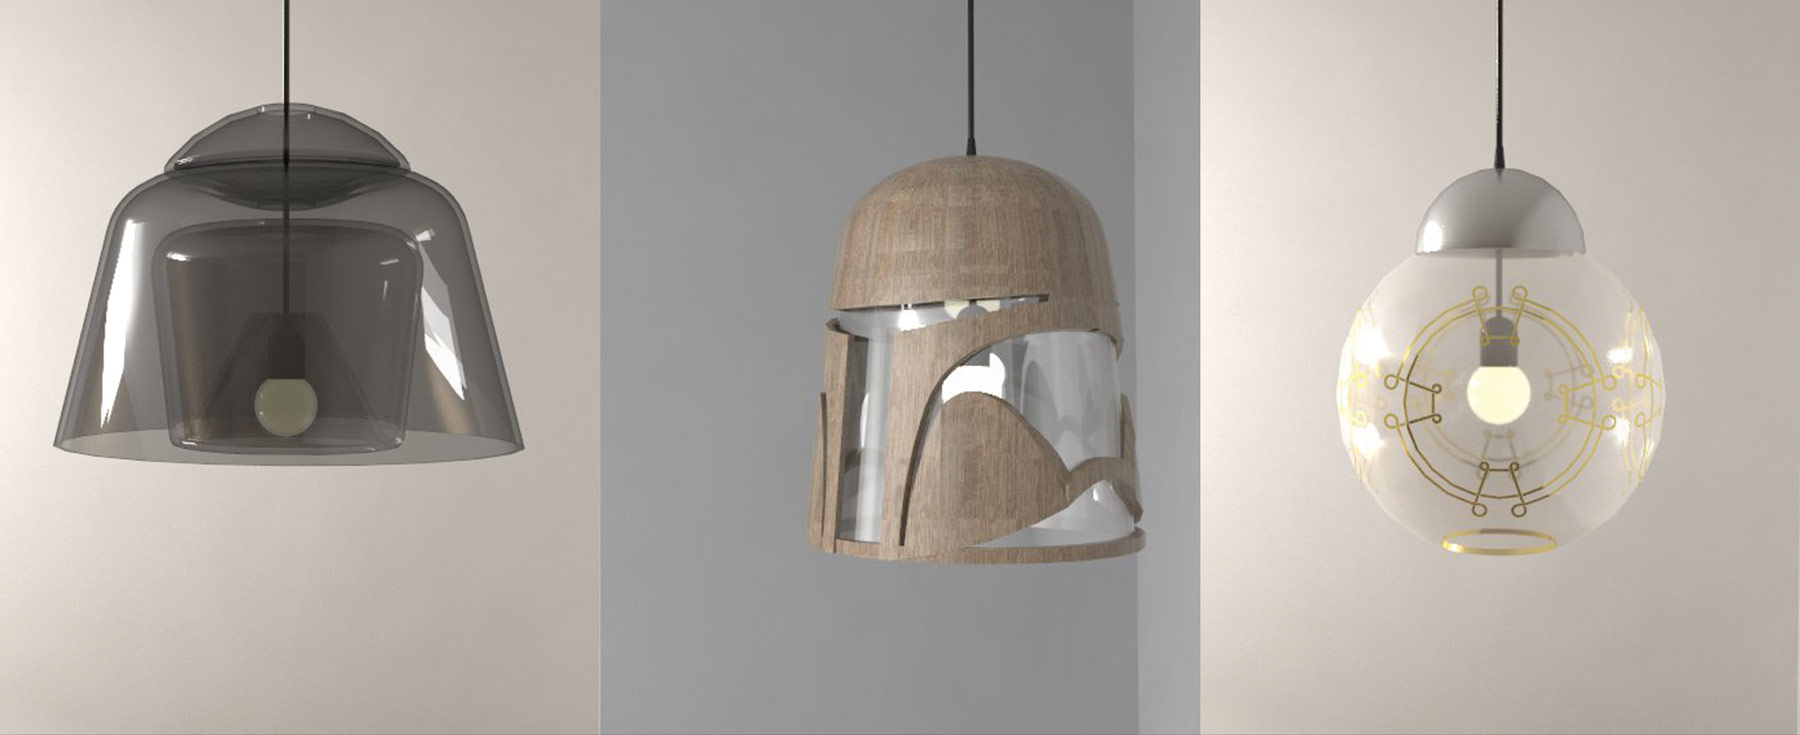 des luminaires inspir s de l 39 univers star wars. Black Bedroom Furniture Sets. Home Design Ideas